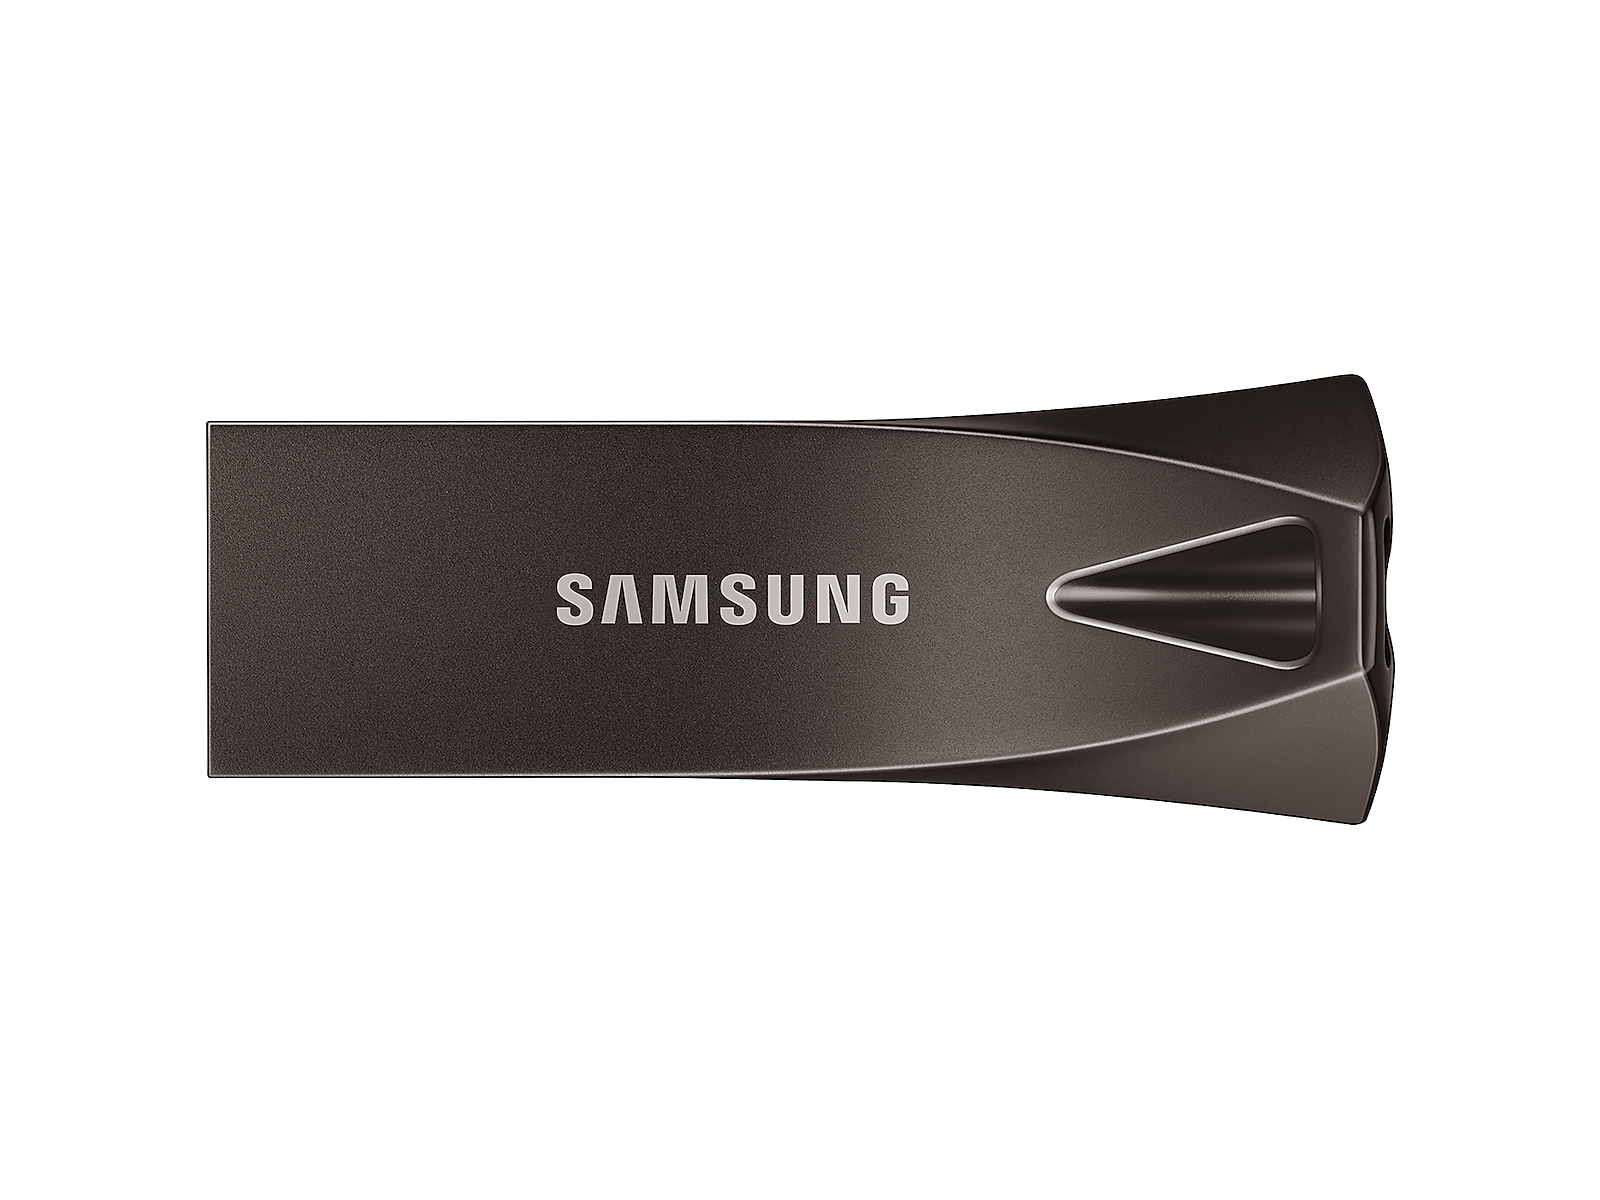 Samsung BAR Plus USB 3.1 Flash Drive 128GB in Titan Grey(MUF-128BE4/AM)